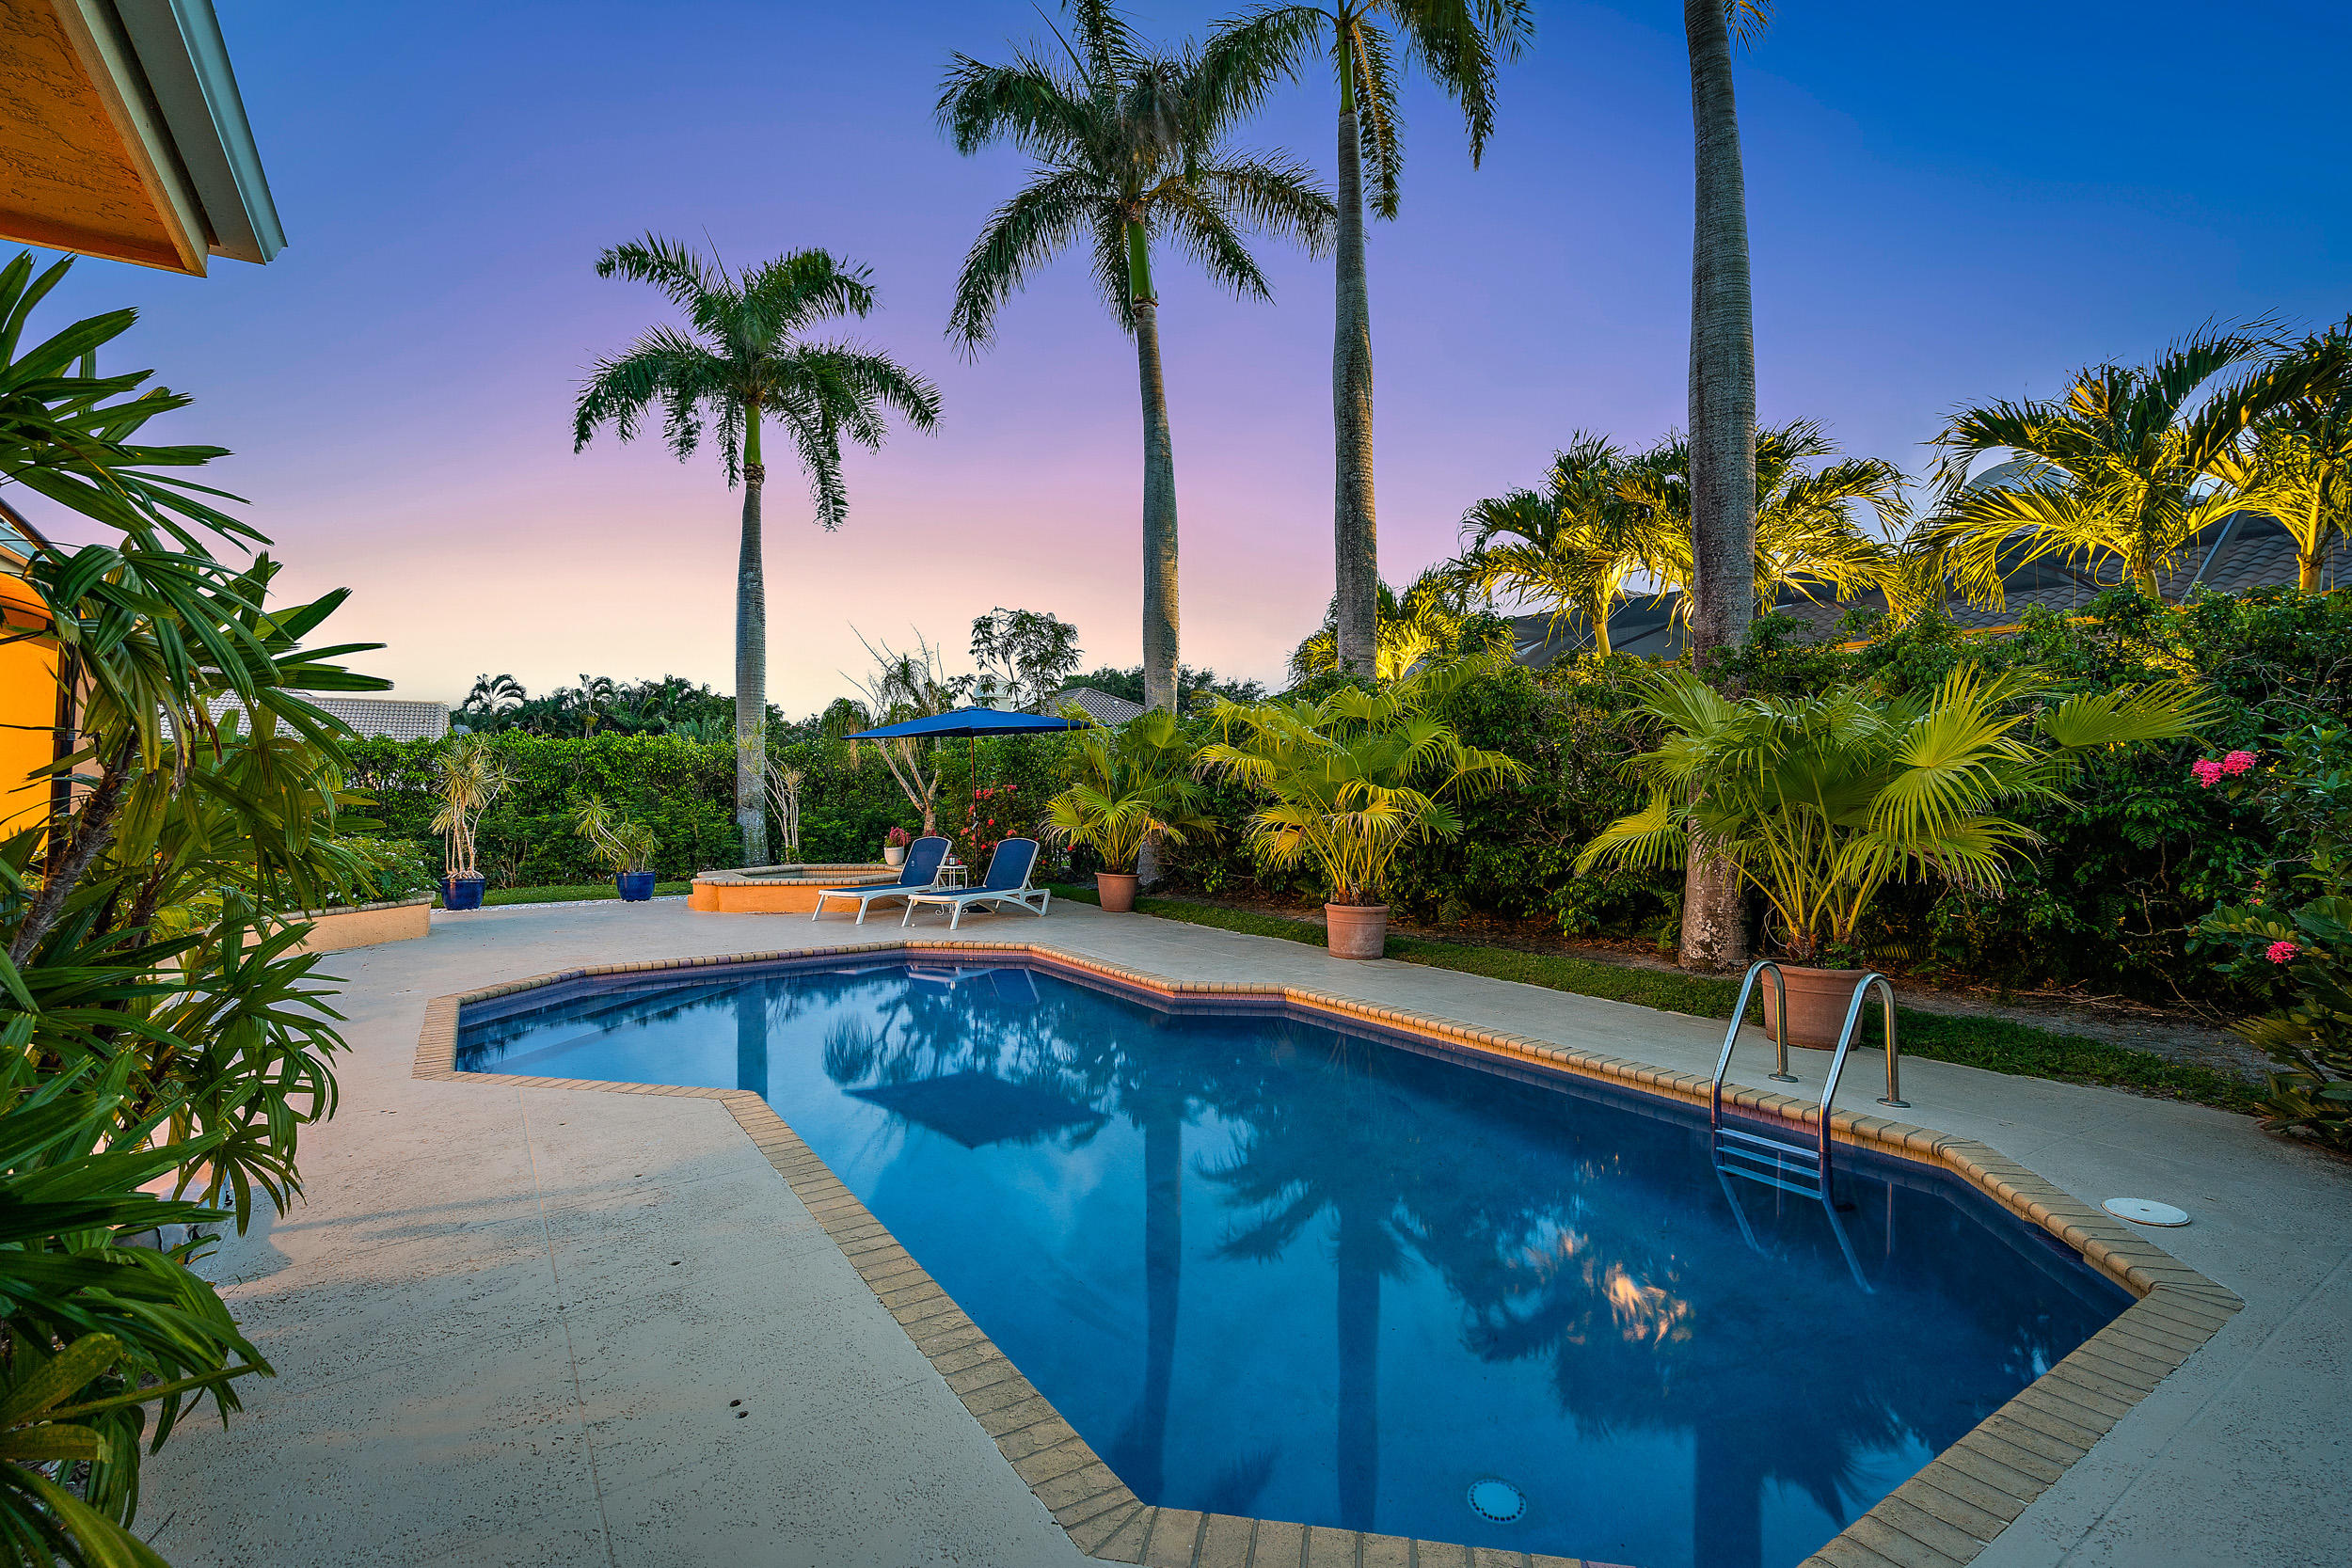 13385  William Myers Court  For Sale 10732597, FL